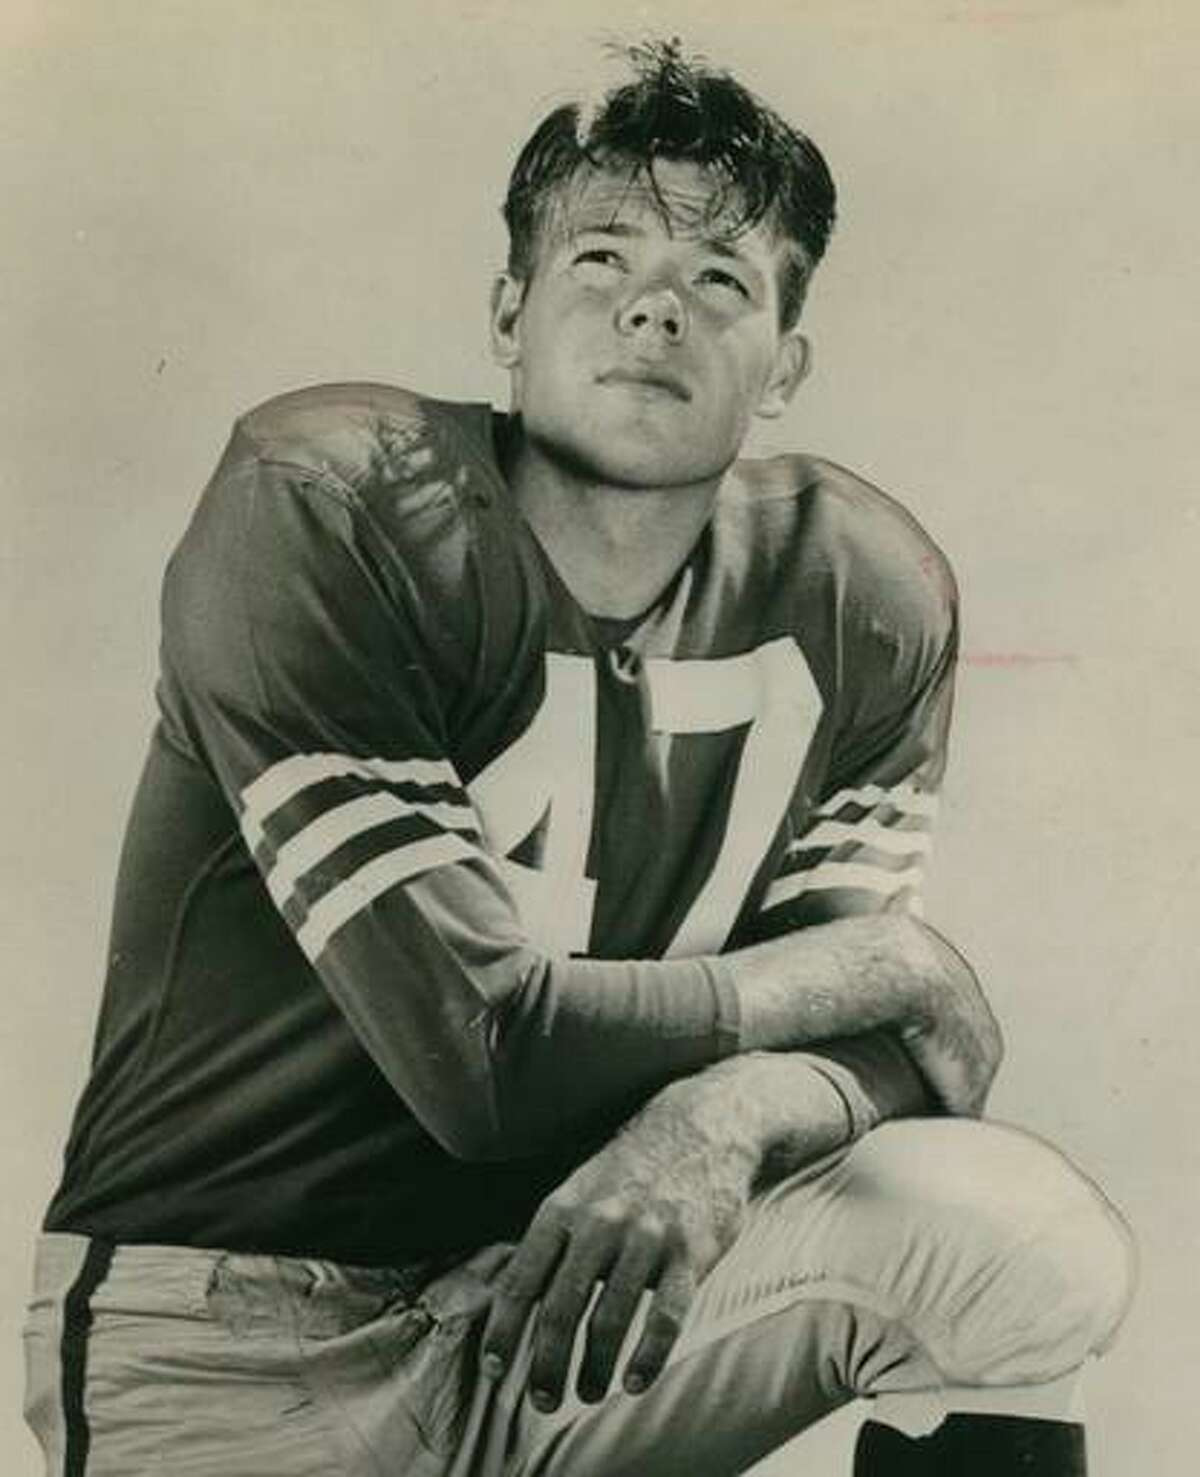 Dicky Maegle was involved in one of college football's most famous plays.